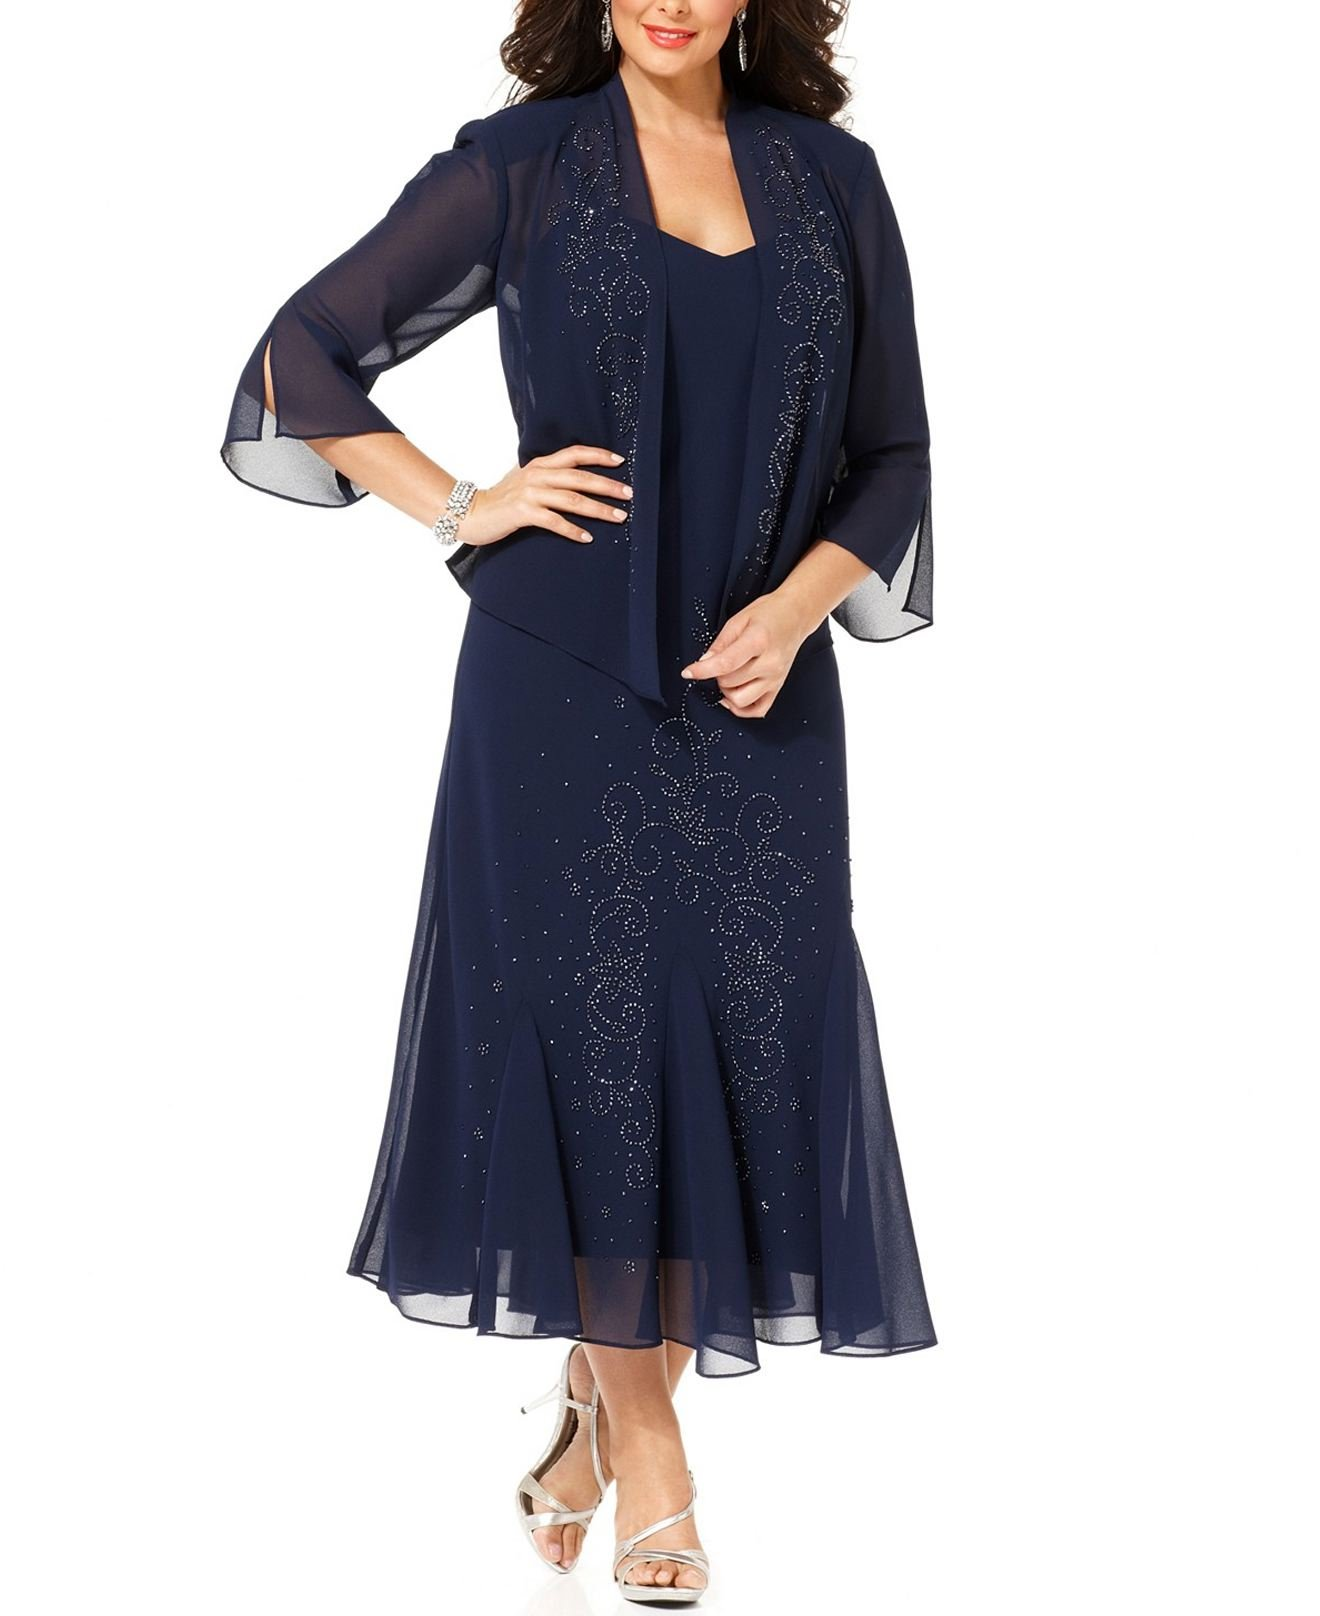 R&M Richards Women's Plus Size Beaded Jacket Dress - Mother of the Bride Dresses (30W, NAVY) by R&M Richards